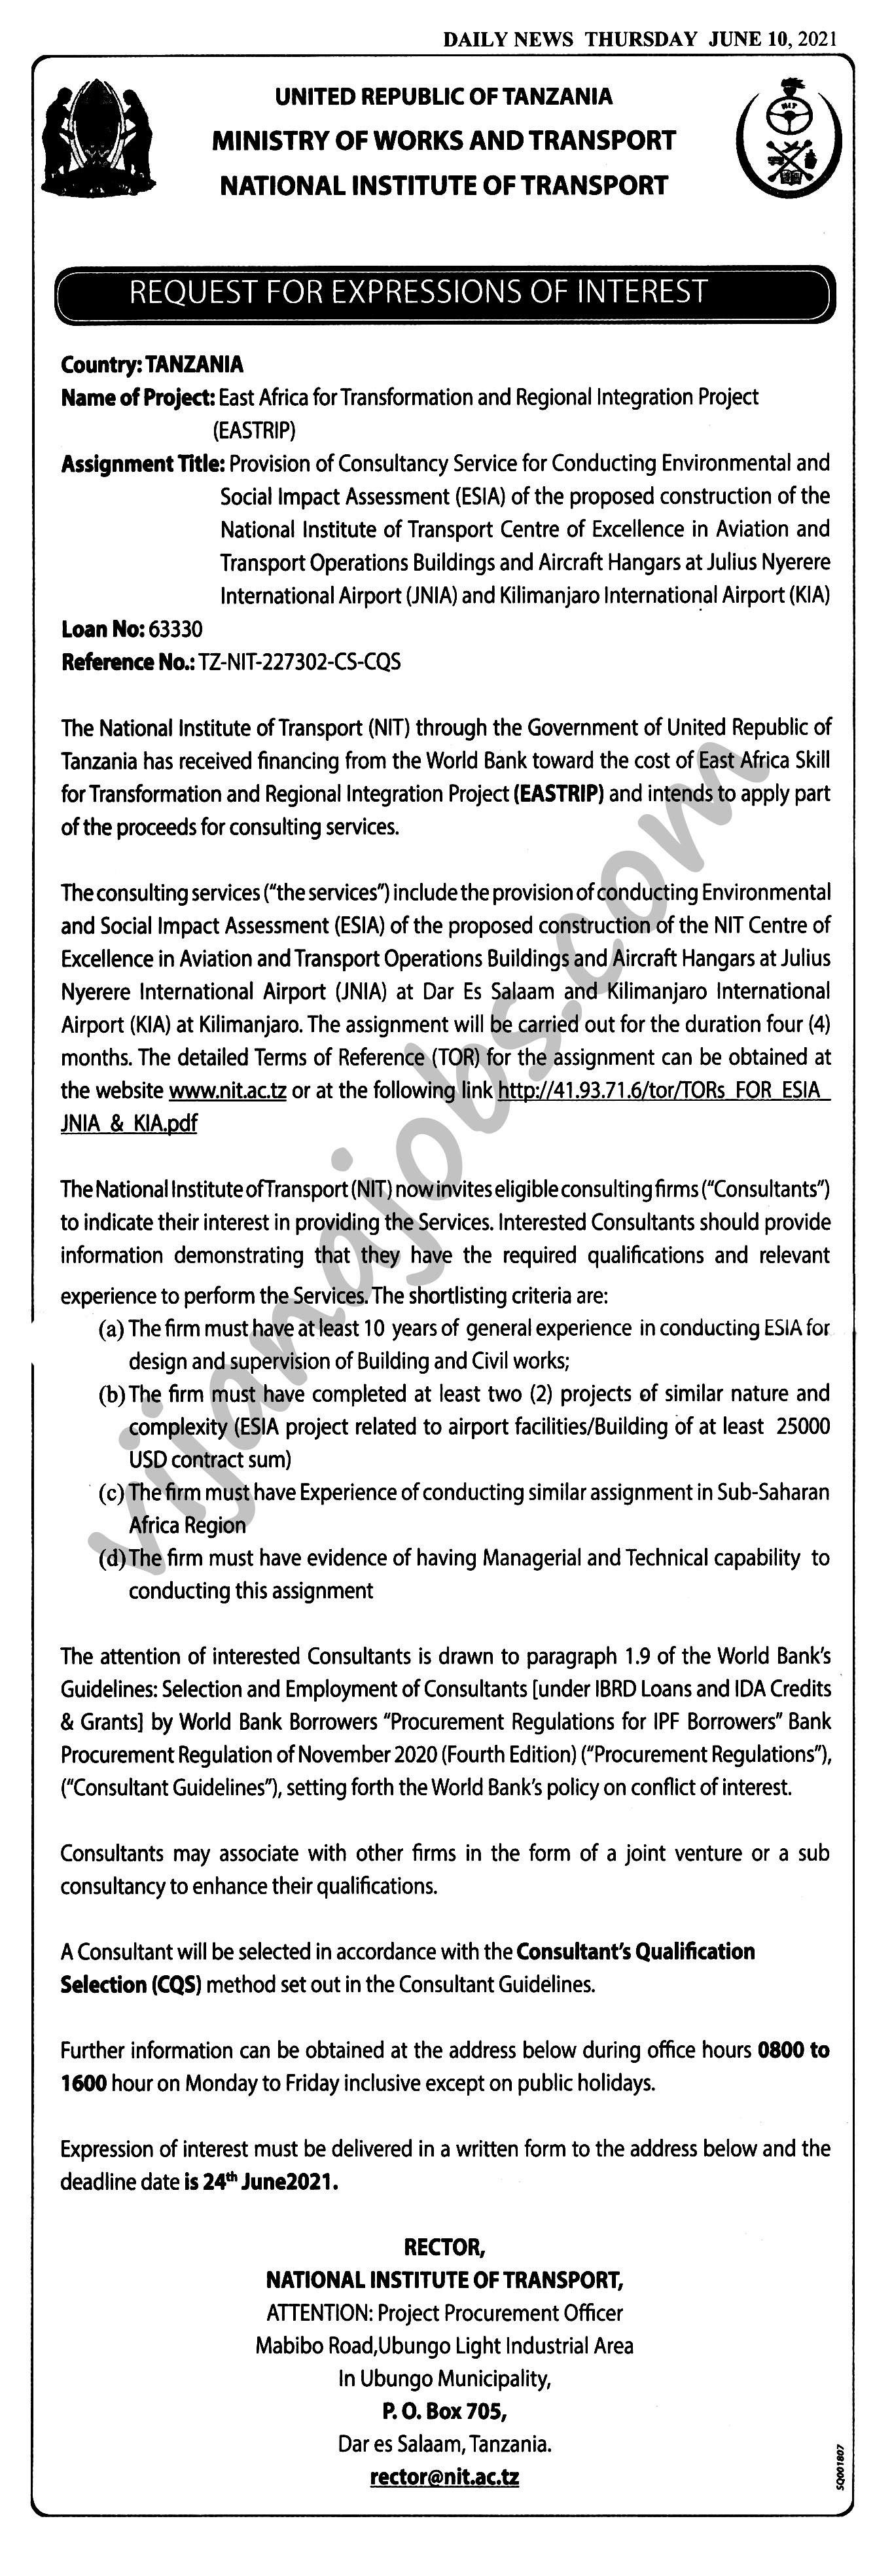 Provision of Consultancy Service for Conductiong Environmental and Social Impact Assessment of the proposed construction of the National Institute of Transport Operations Buildings and Aircraft Hangars at JNIA and KIA